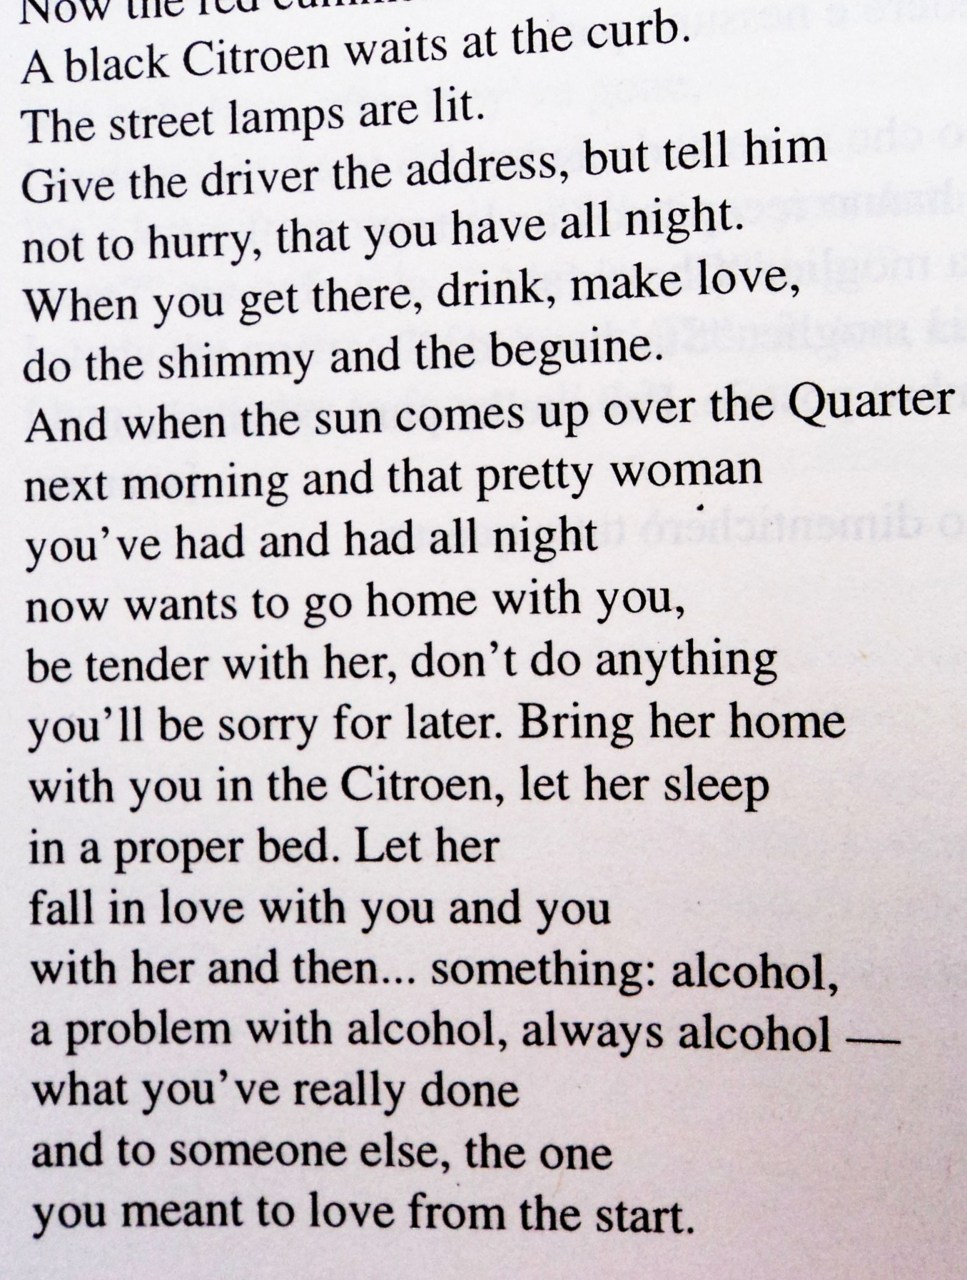 raymond carver quotes on drinking quotesgram advertisement